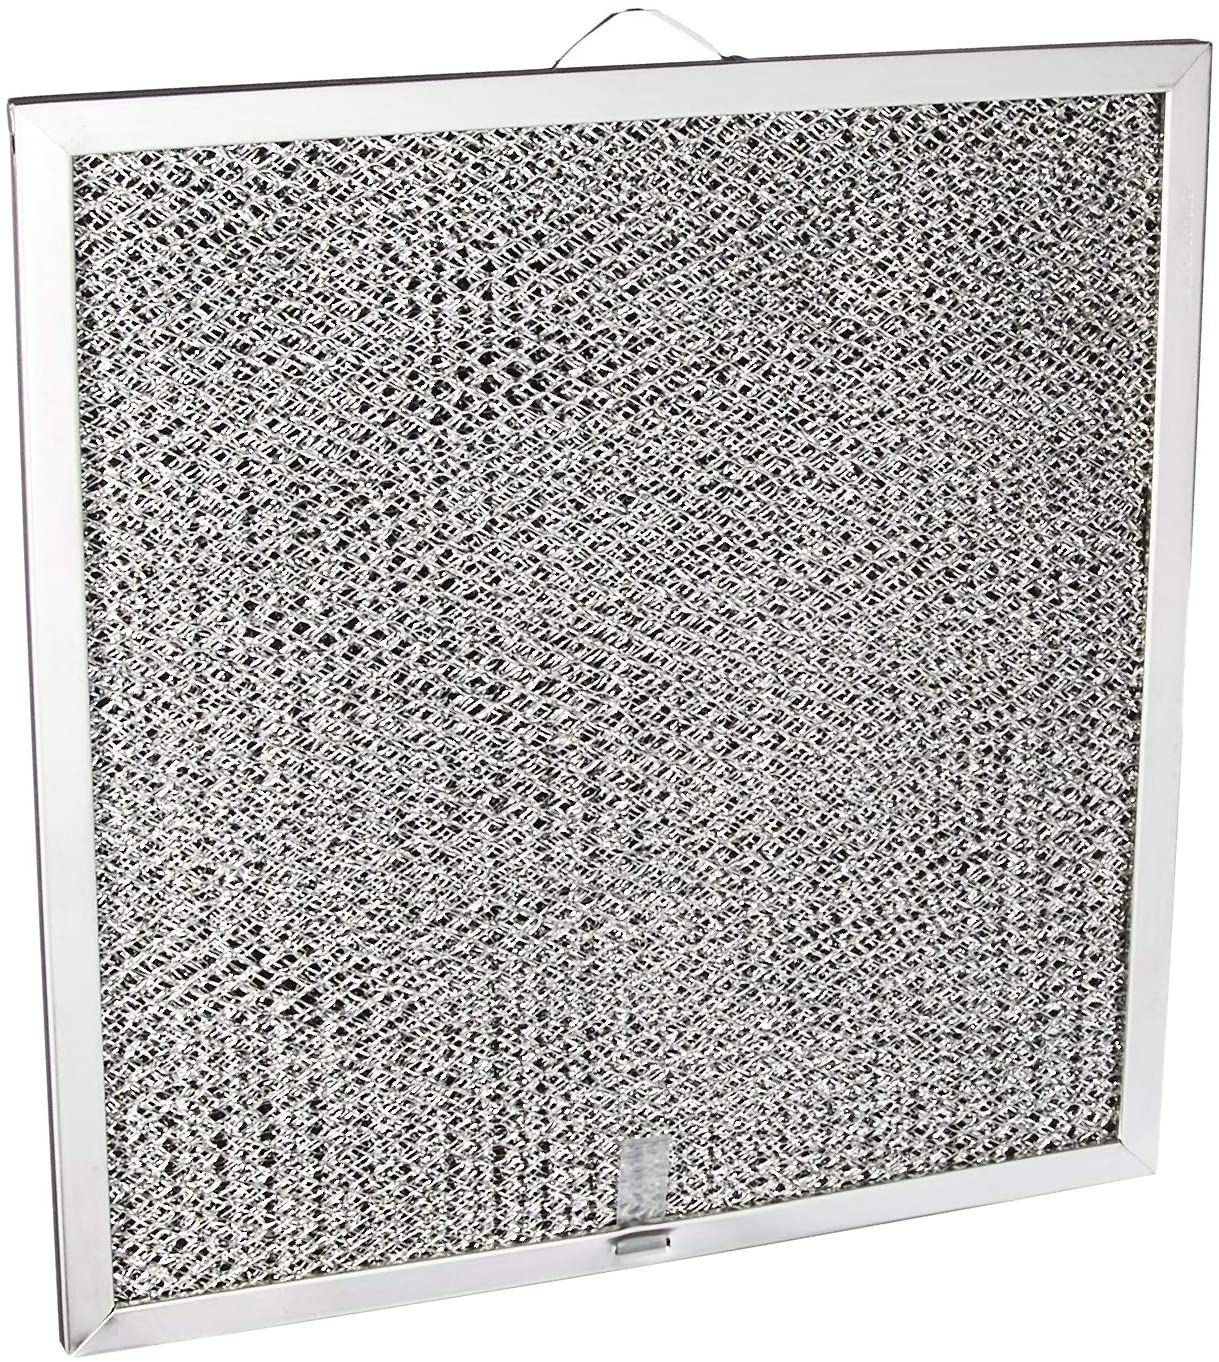 Broan-NuTone BPQTF Non-Ducted Charcoal Replacement Filter